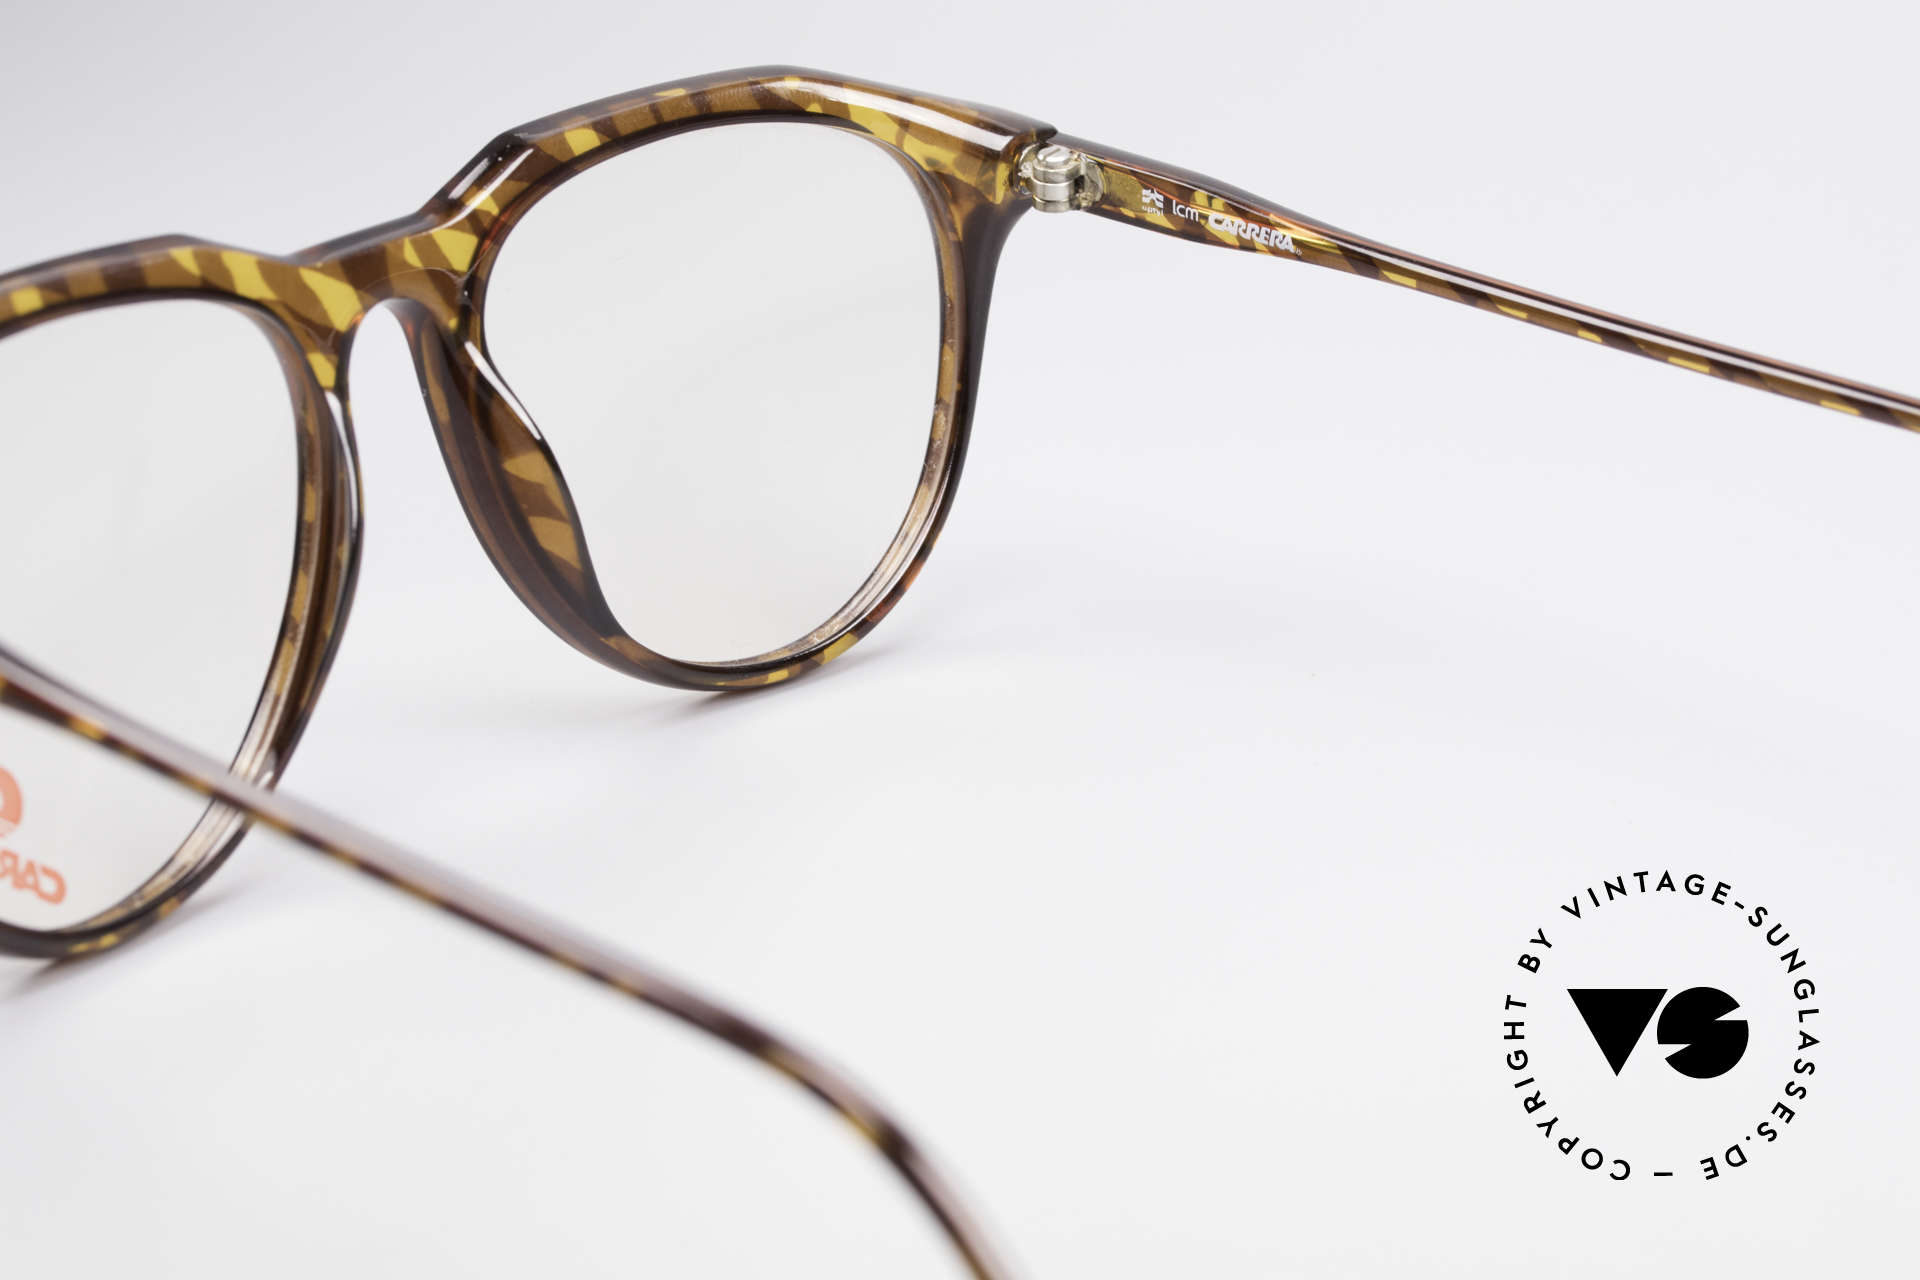 Carrera 5361 90's Optyl Eyeglasses Panto, the frame can be glazed with optical / sun lenses, Made for Men